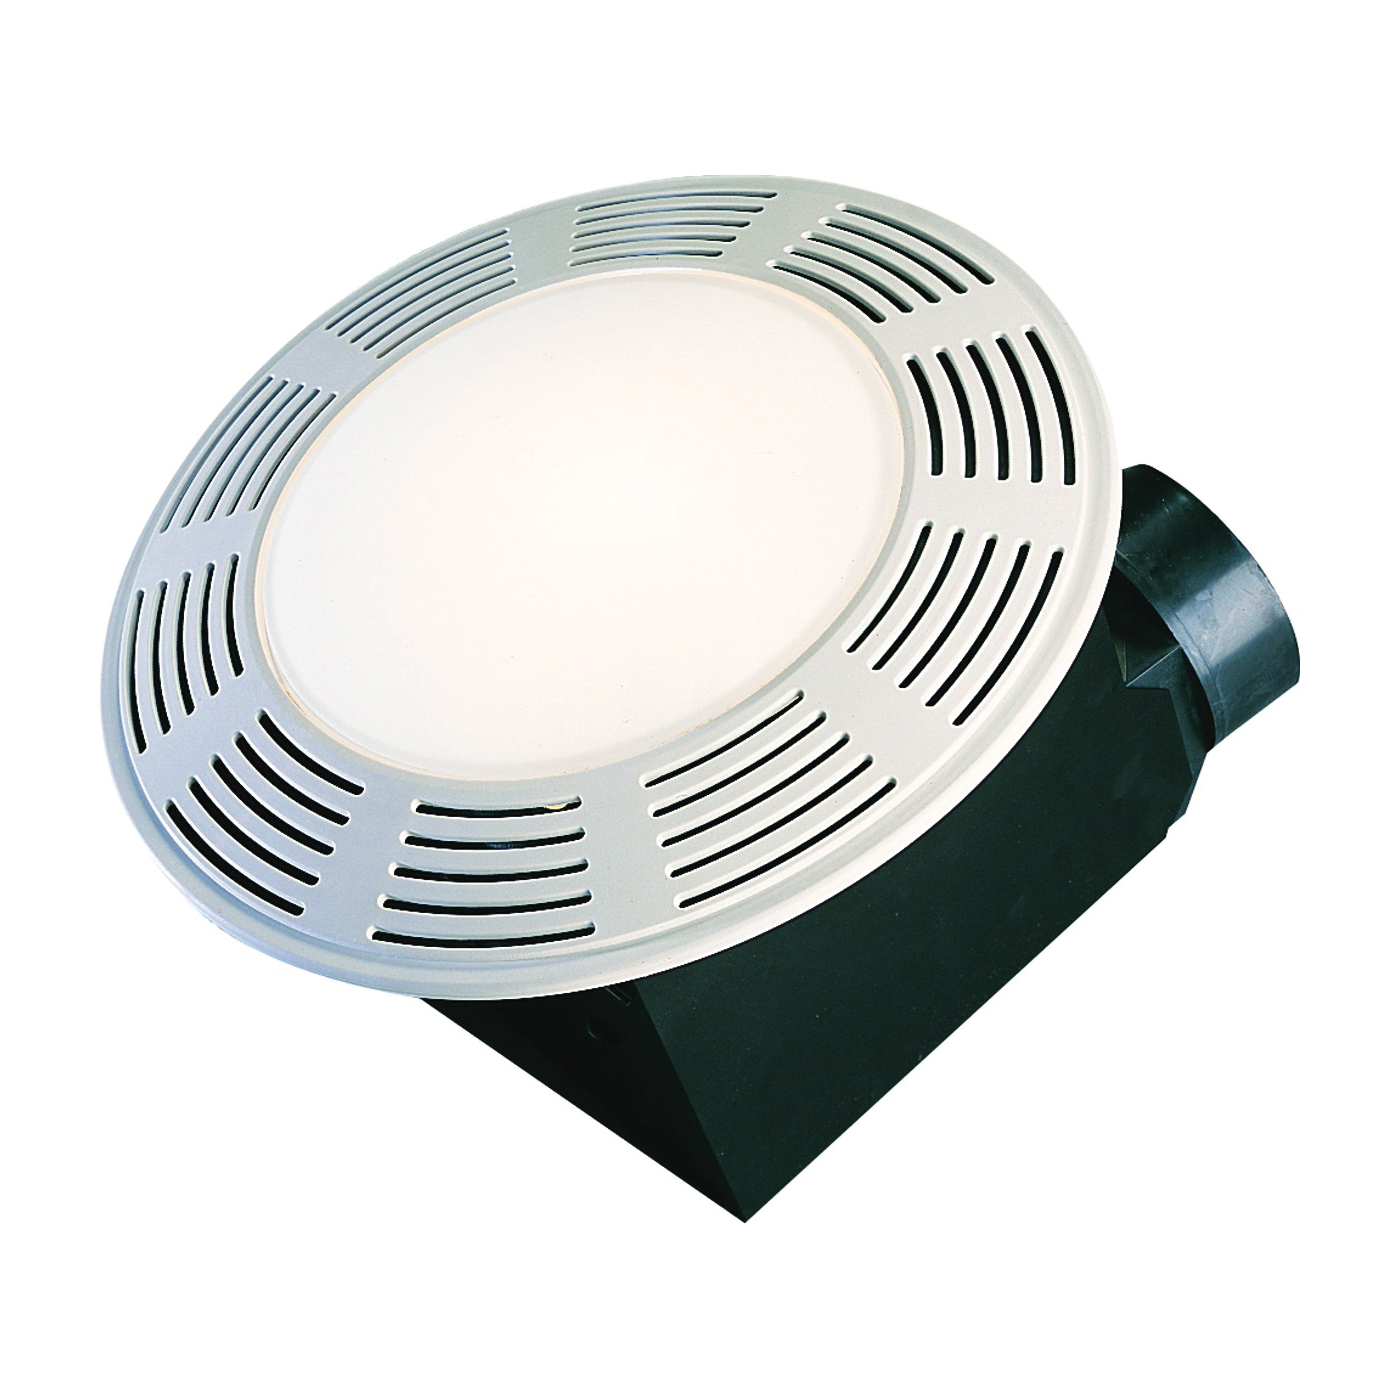 Picture of Air King AK863L Exhaust Fan, 0.8 A, 120 V, 100 cfm Air, 3.5 Sones, CFL, Incandescent Lamp, 4 in Duct, White